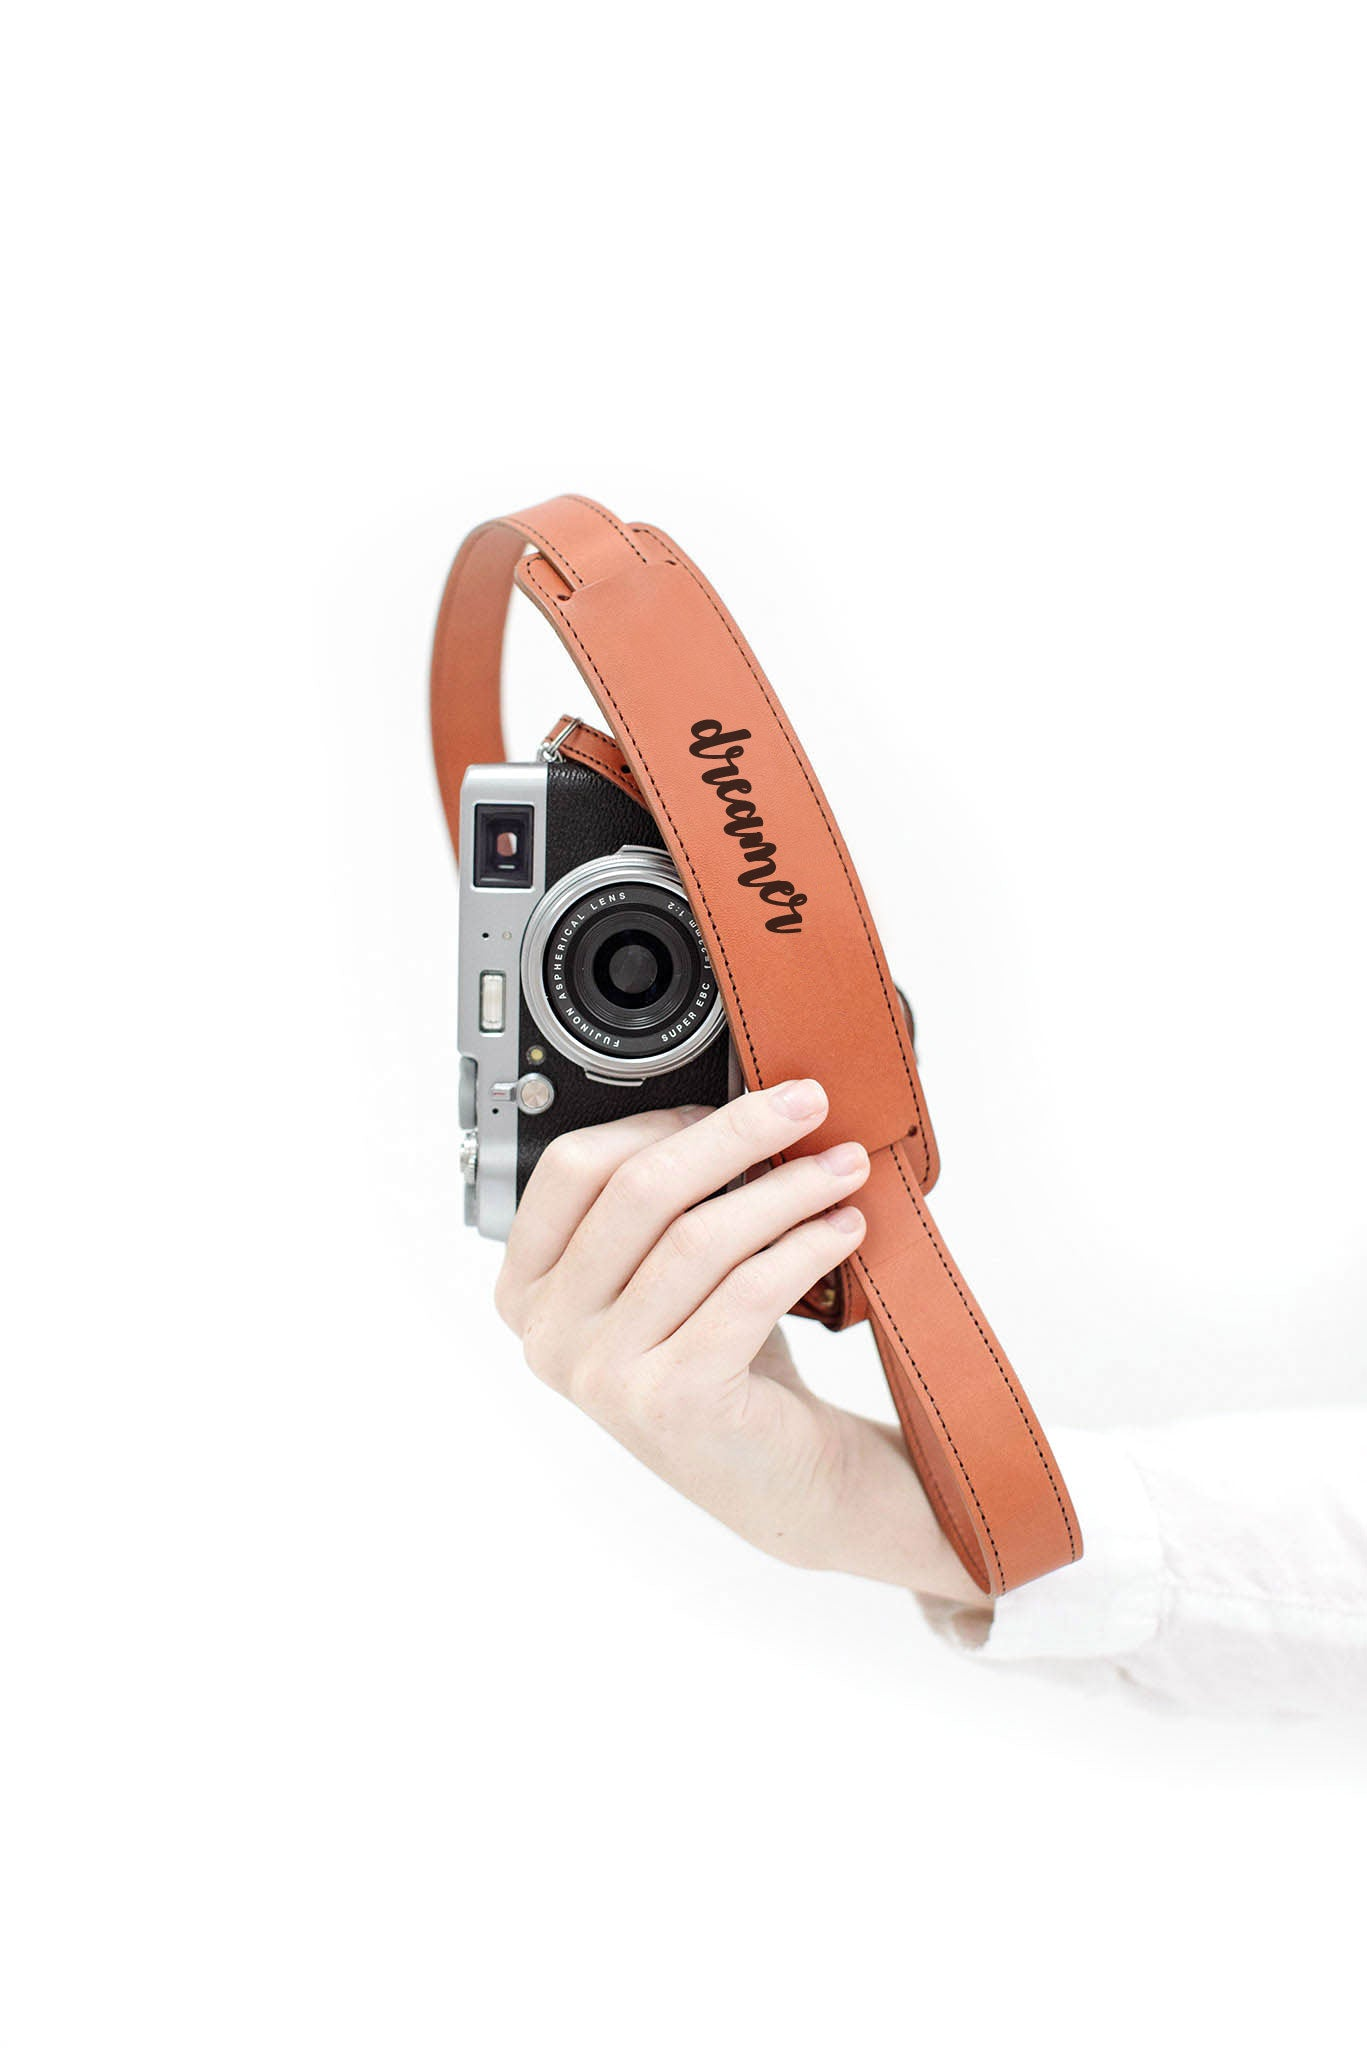 "FOTO | ""Dreamer"" Skinny Fotostrap - this genuine leather skinny camera strap is available in cognac and black leather, making it the perfect photographer gift!"